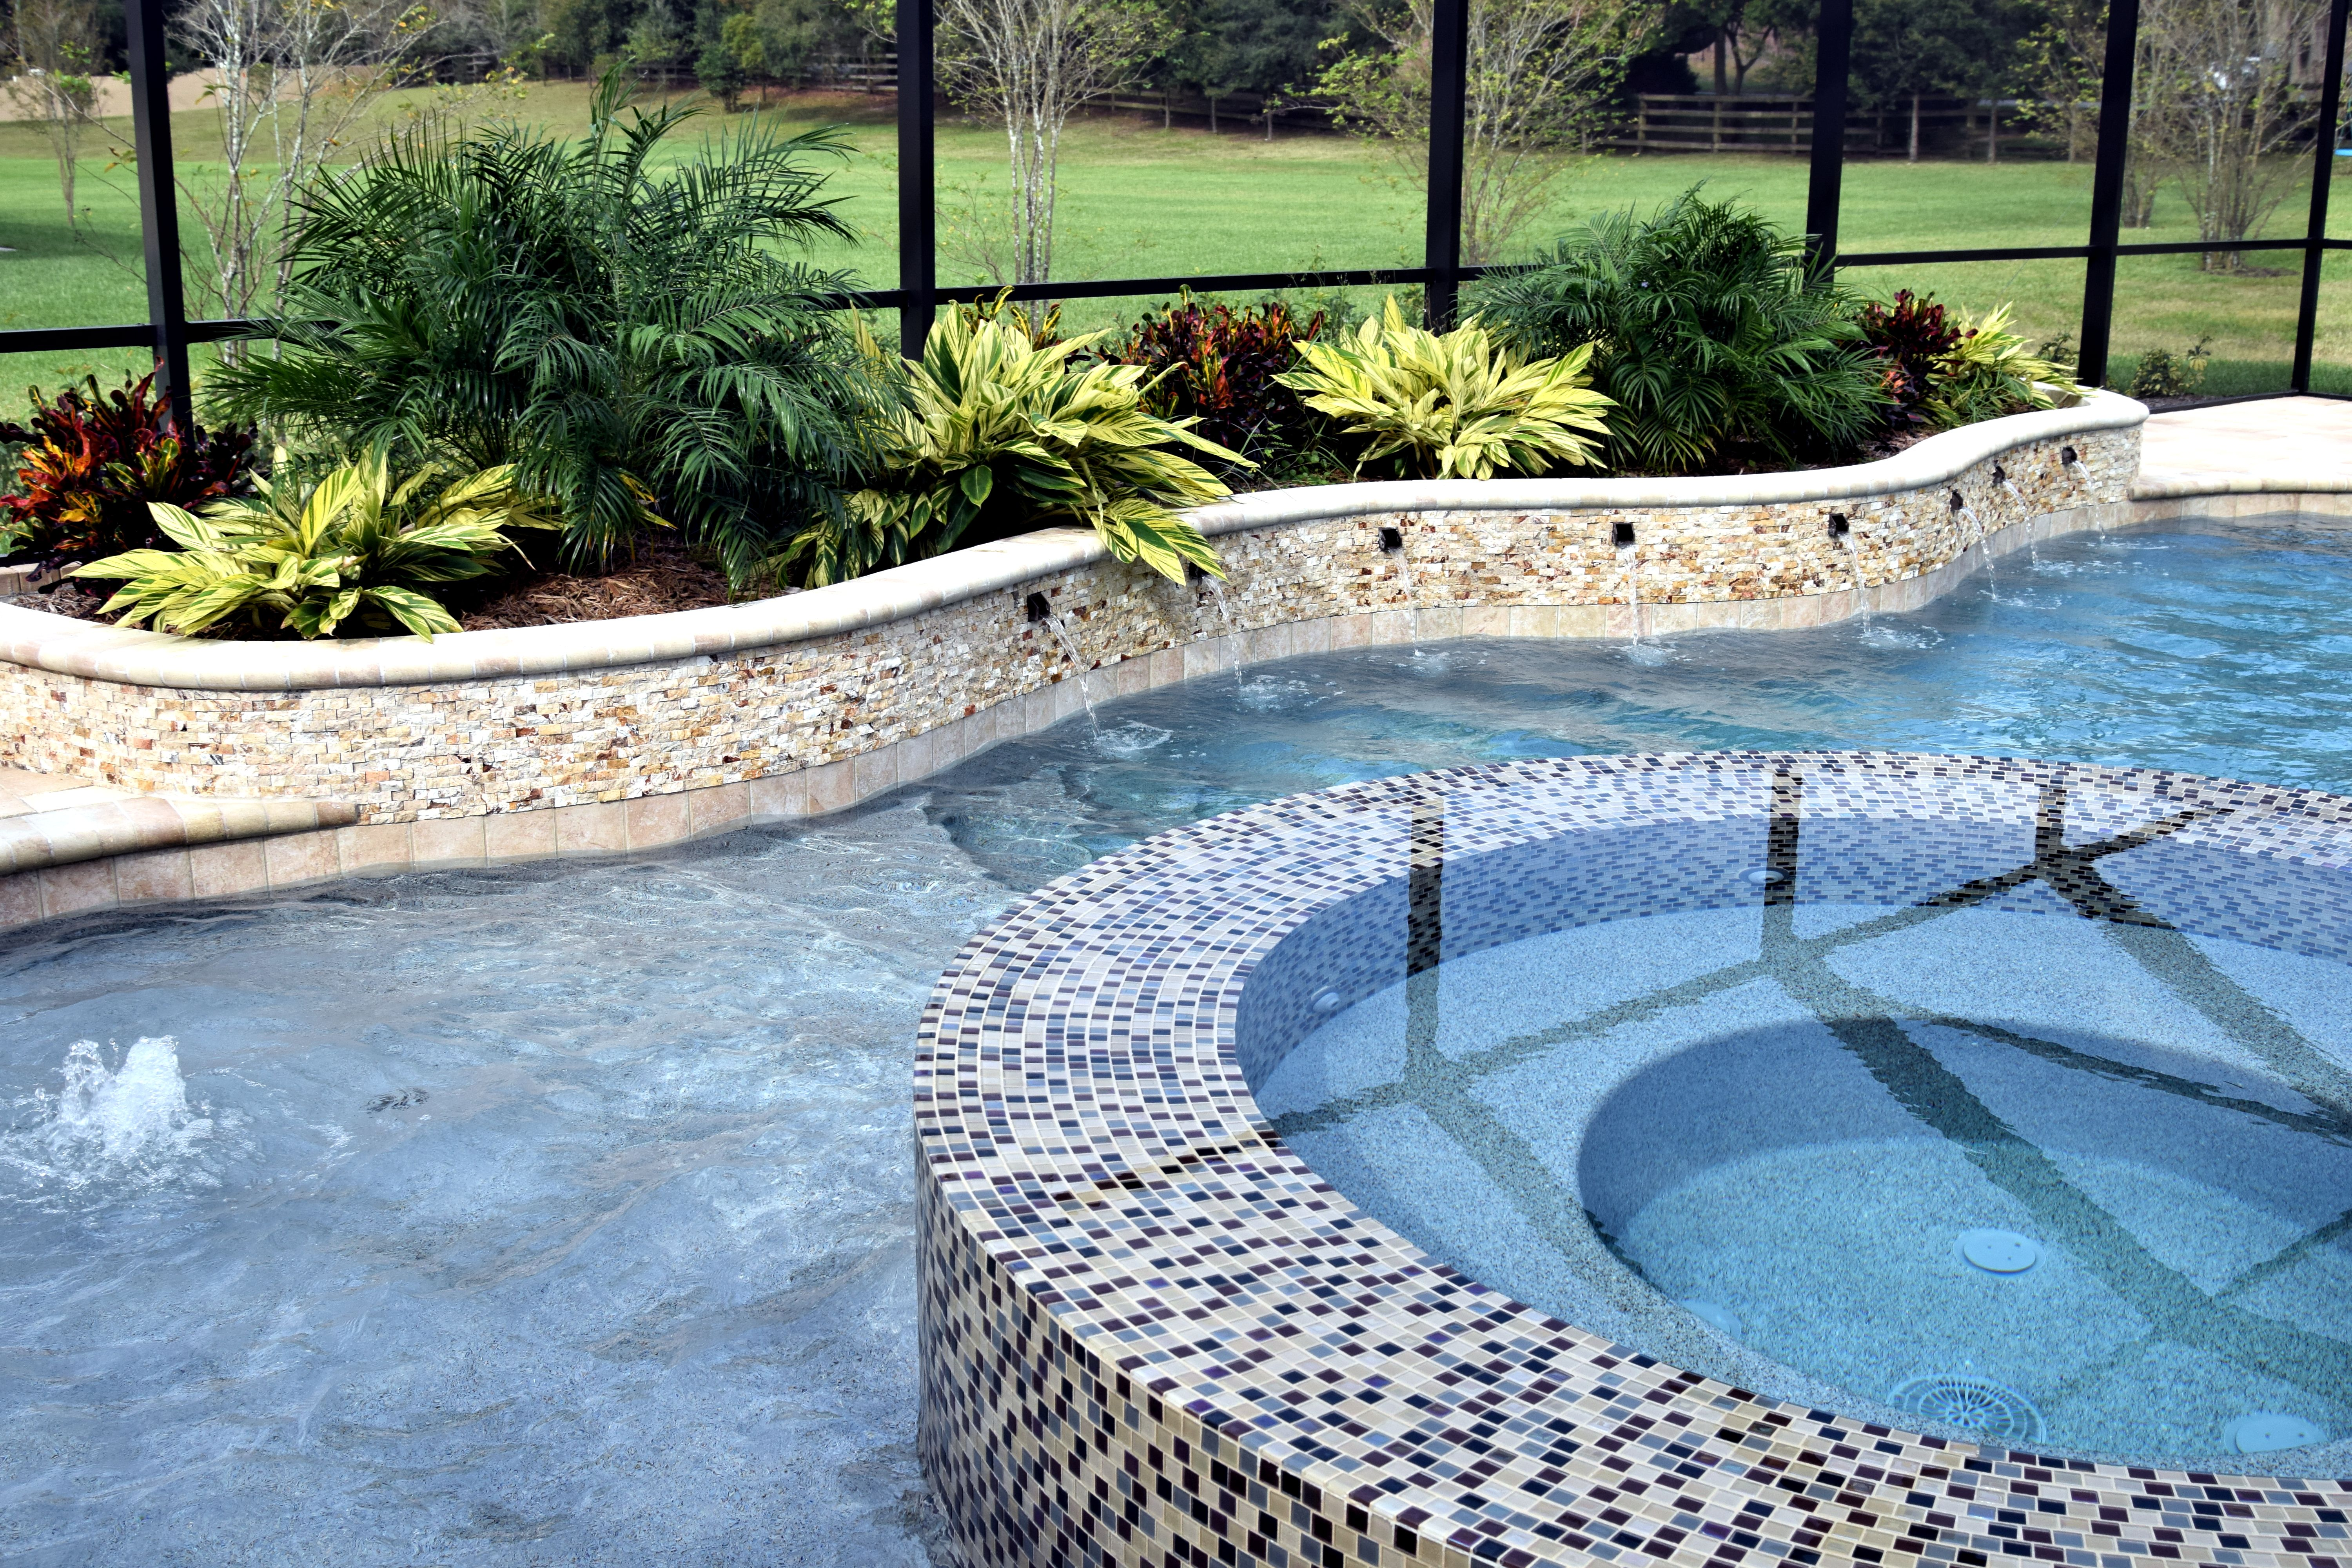 Westchase Pool builder, Contractor, Remodeling, Outdoor Kitchens